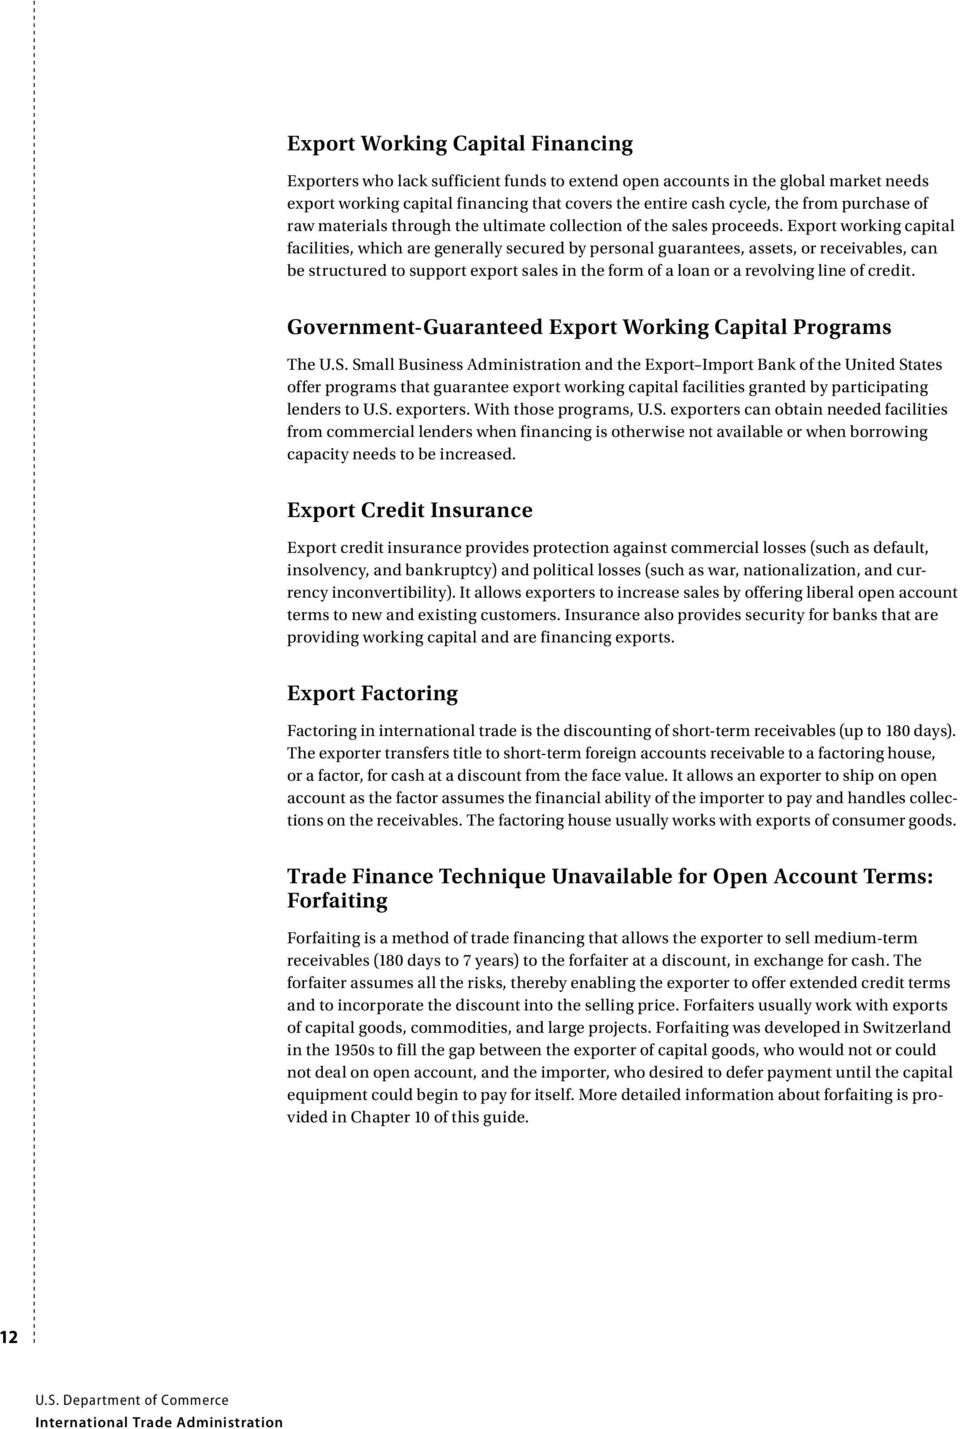 Export working capital facilities, which are generally secured by personal guarantees, assets, or receivables, can be structured to support export sales in the form of a loan or a revolving line of